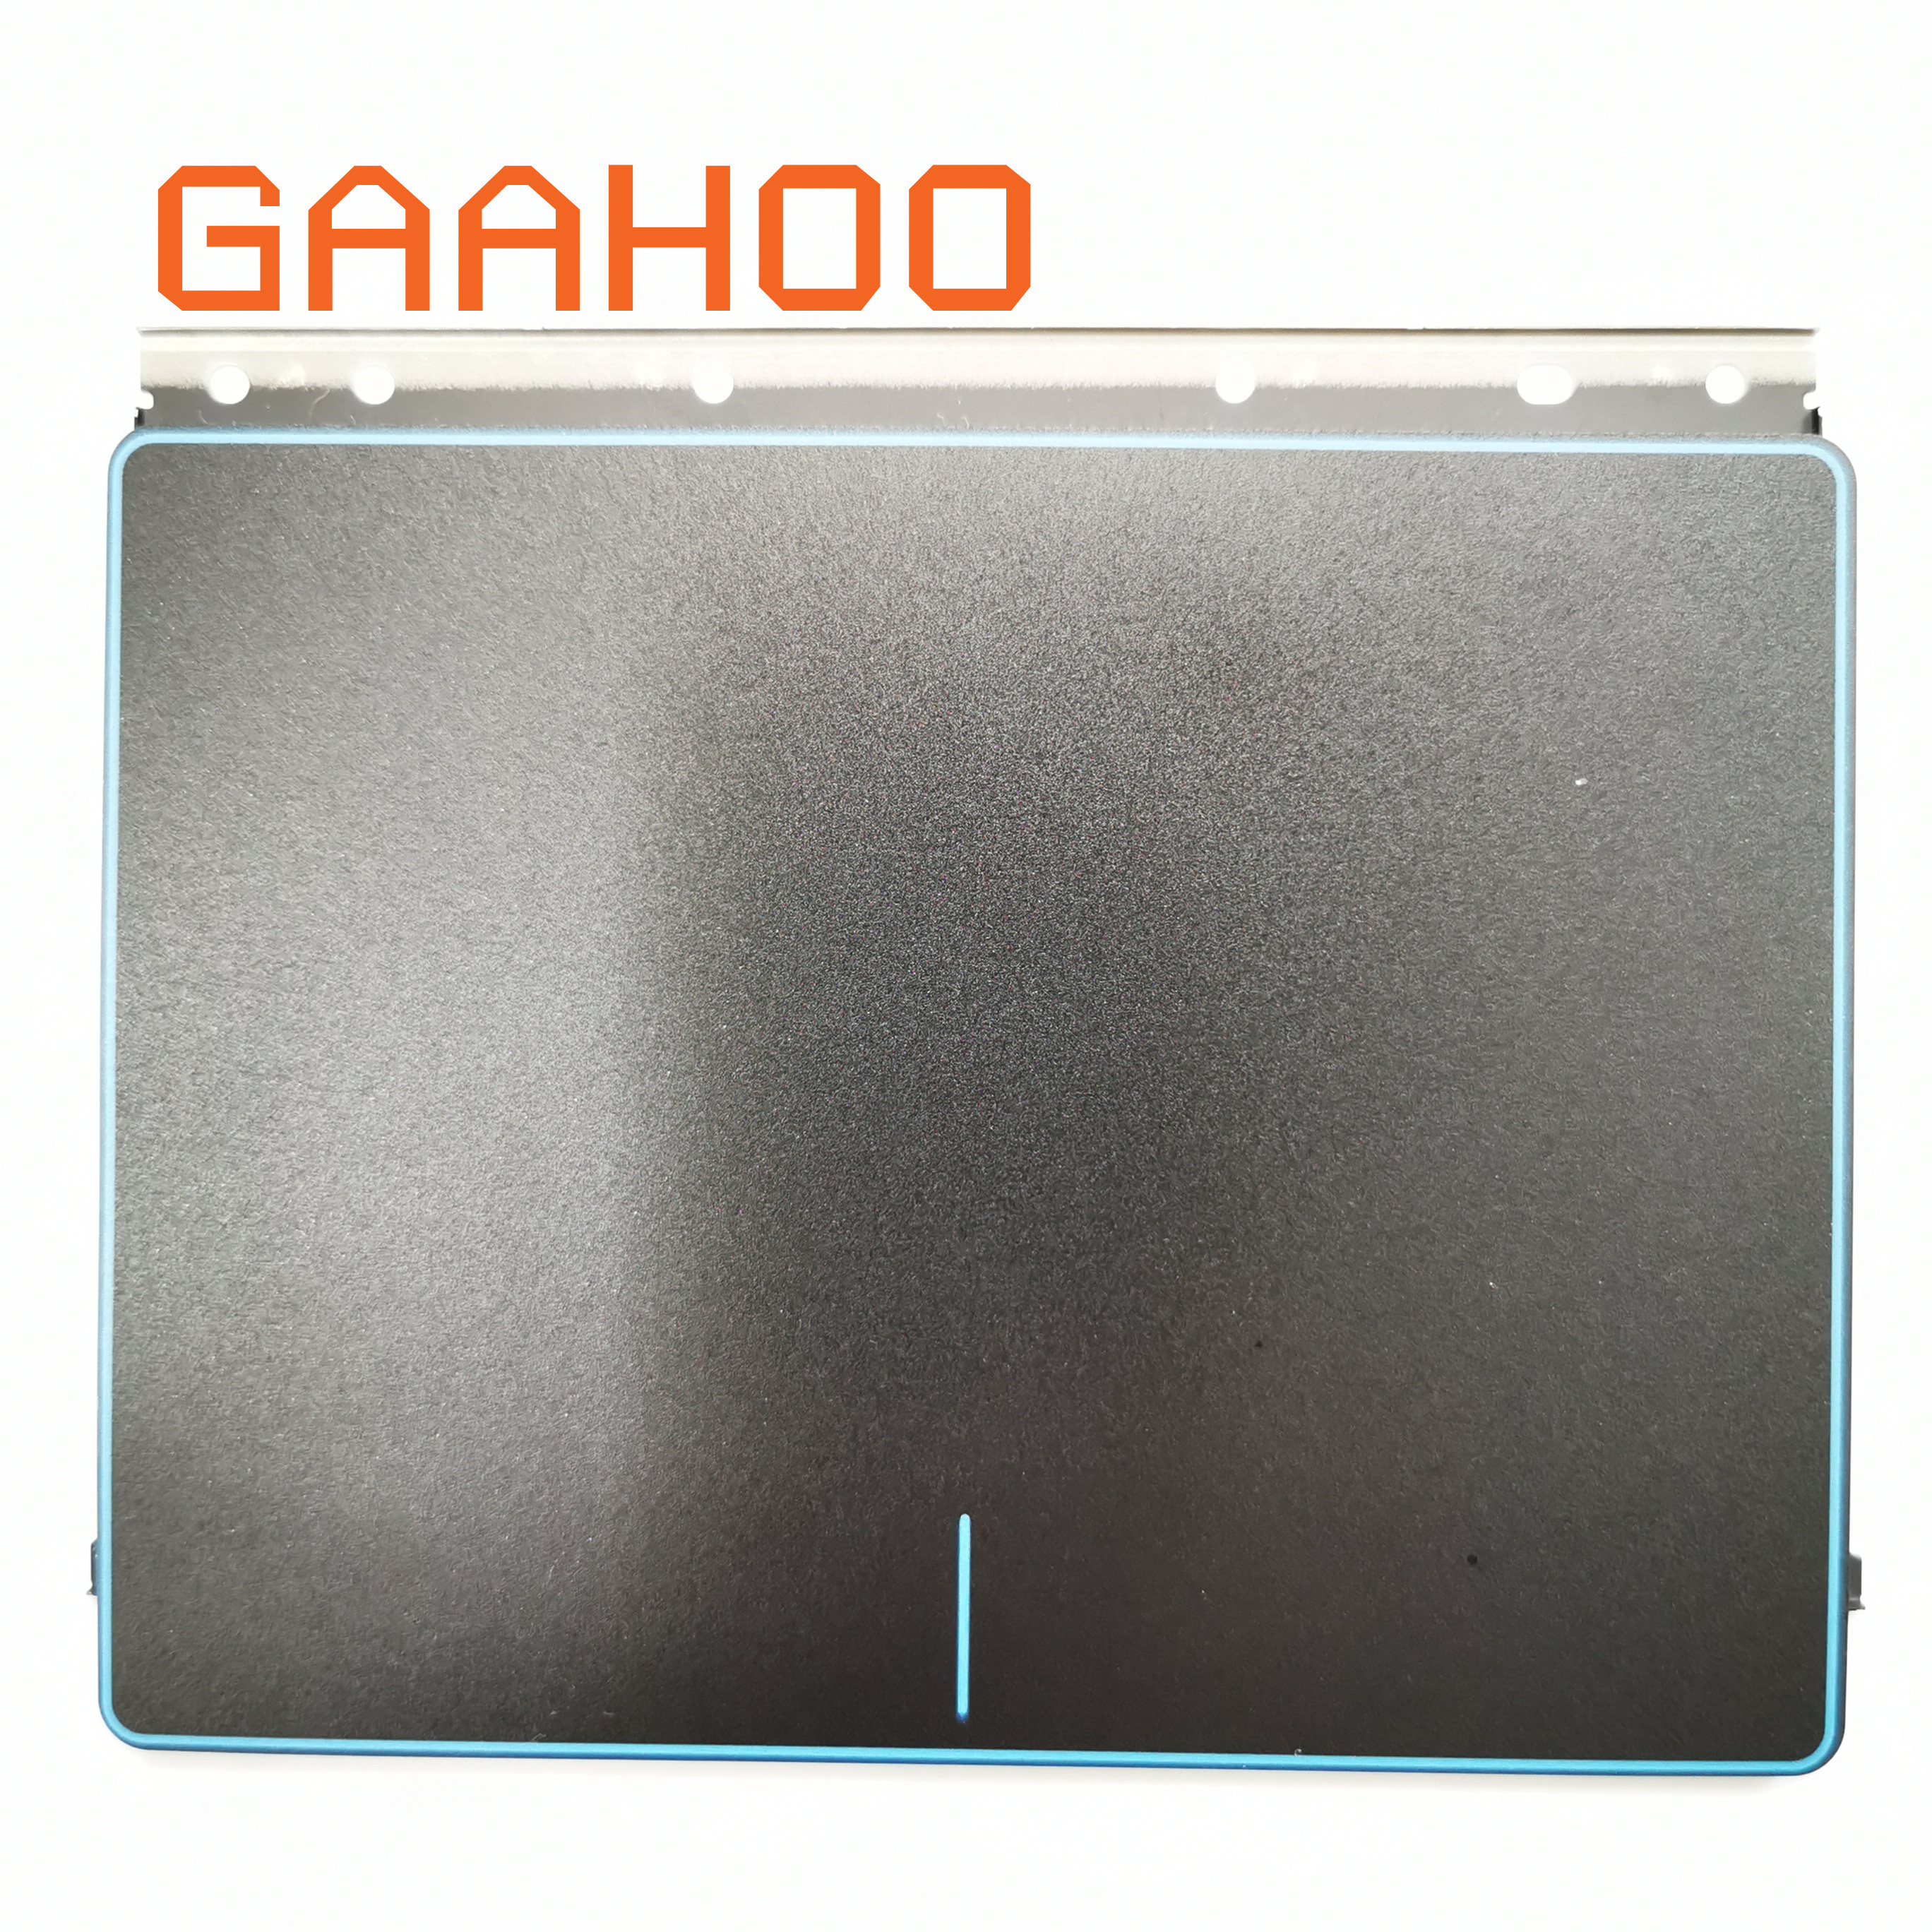 Laptop Touchpad for <font><b>DELL</b></font> GAMING15 3579 3578 <font><b>3779</b></font> 5578 5588 7577 7588 Gaming17 <font><b>3779</b></font> 5778 7778 7788 Buit In Touchpad BLUE image